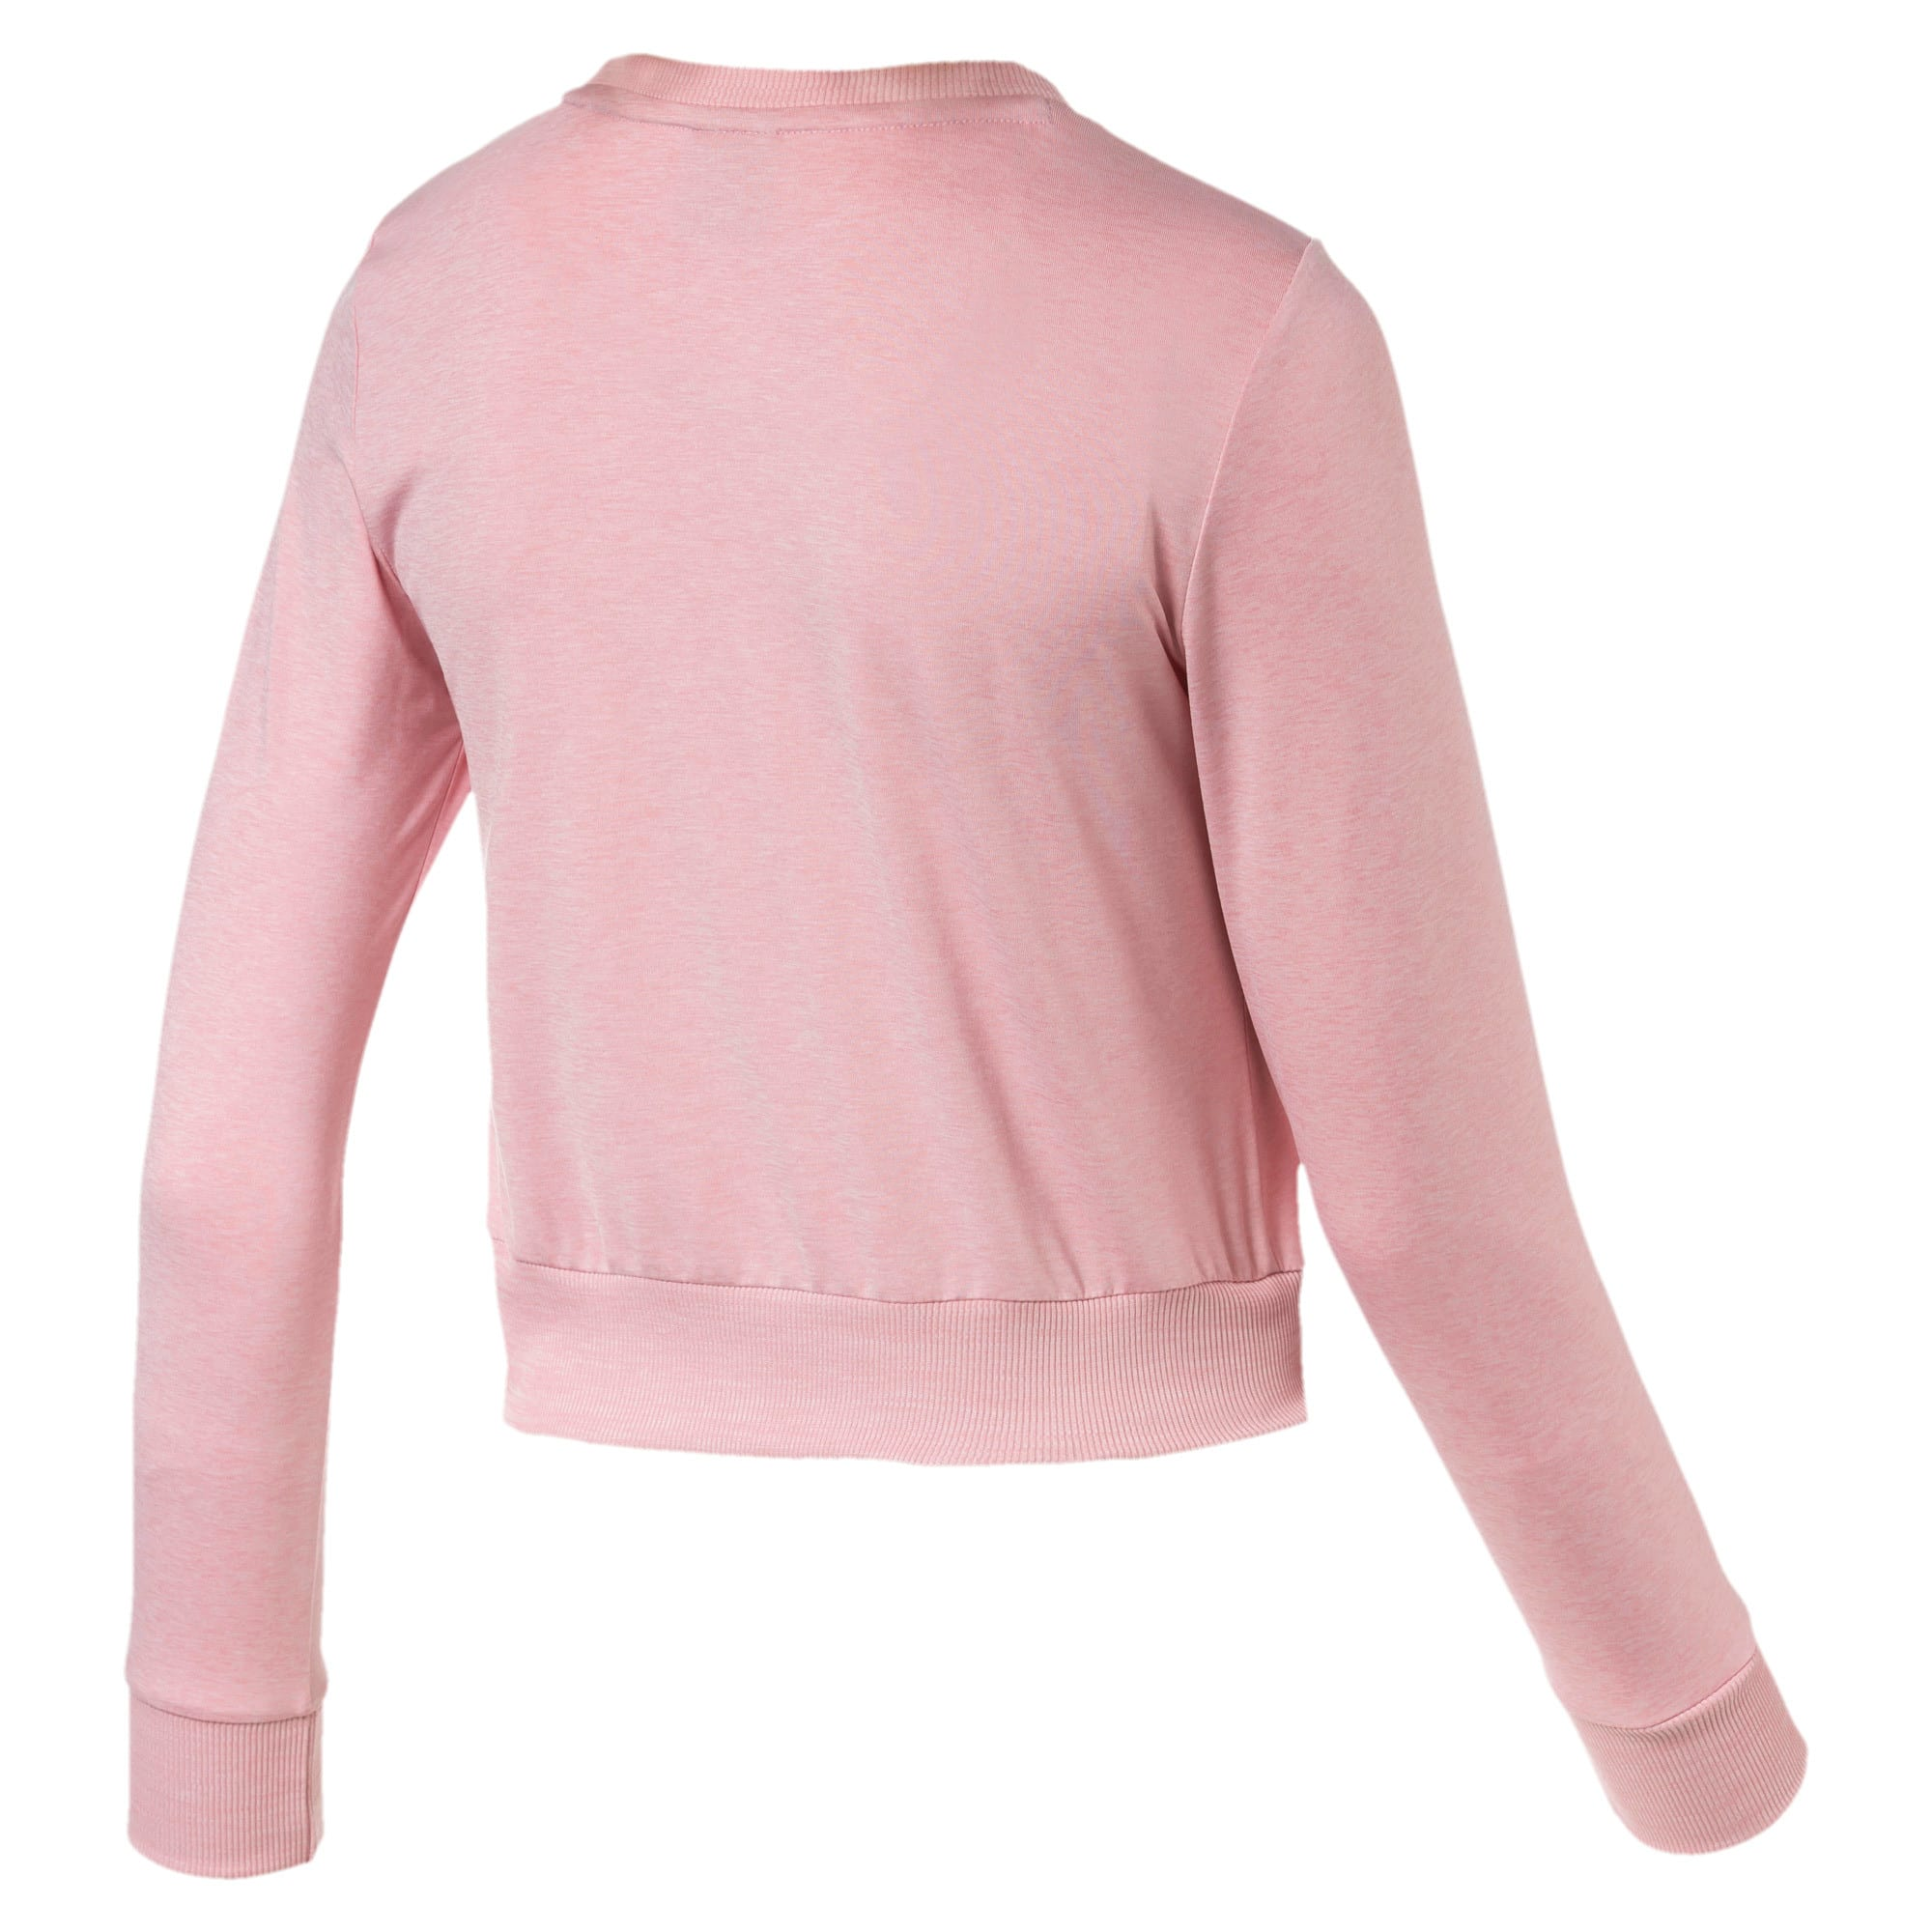 Thumbnail 5 of Soft Sports Long Sleeve Women's Tee, Bridal Rose Heather, medium-IND